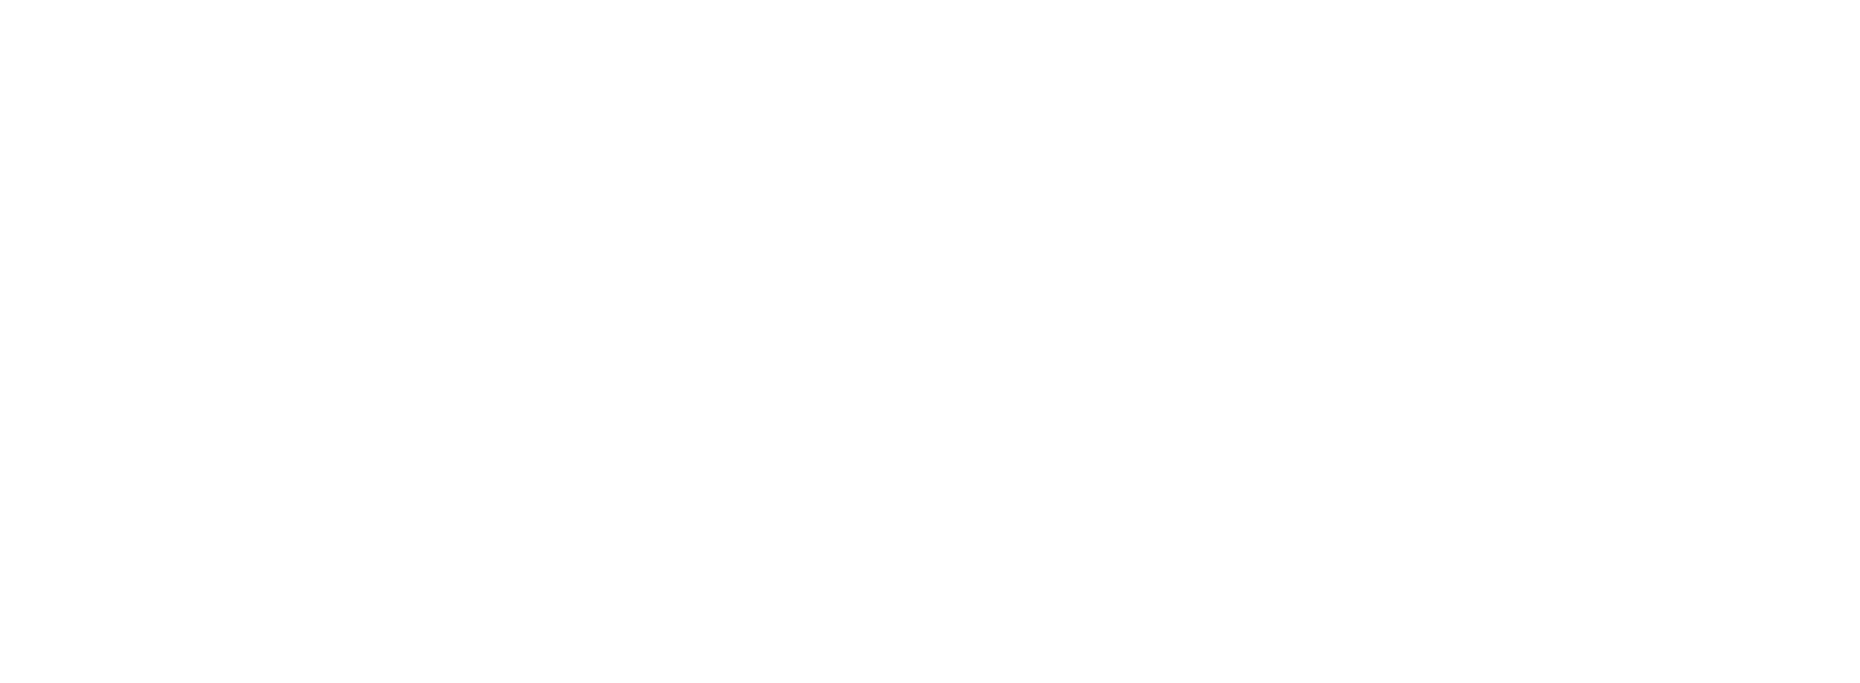 winc-web-banners-sugaring-waxing.png